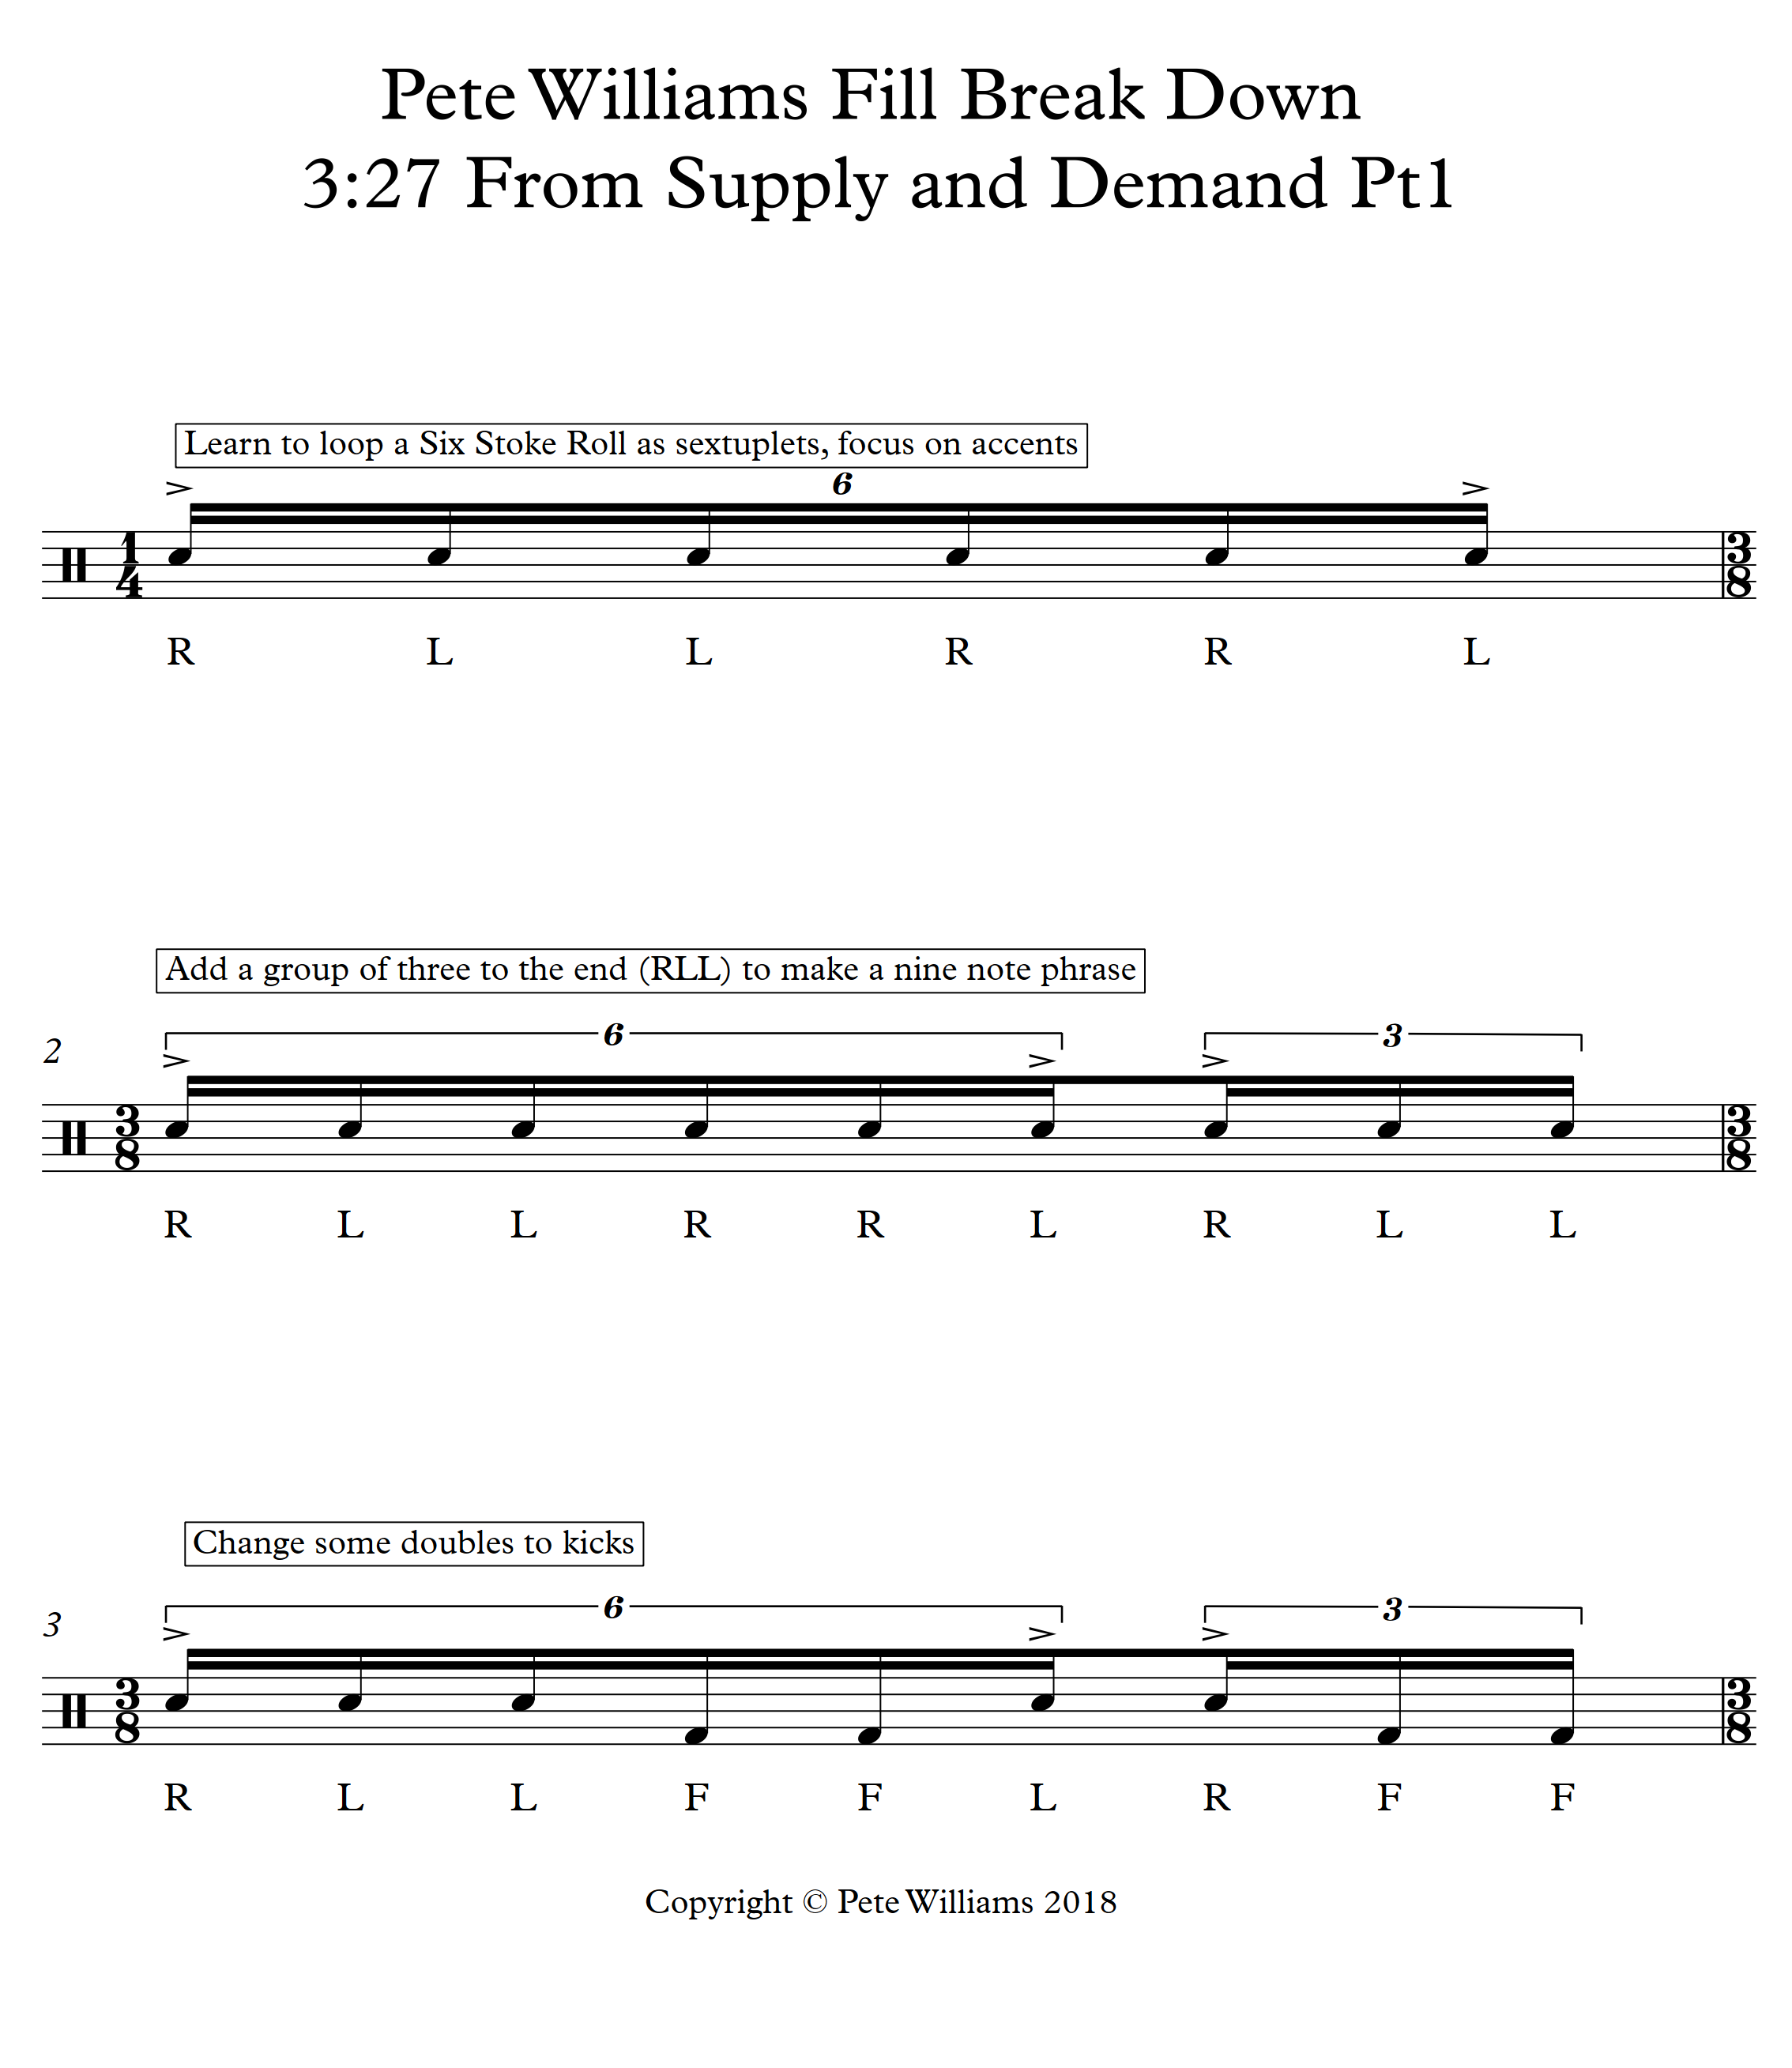 Pete Williams Fill Break Down 3 27 From Supply and Demand pt1_0001